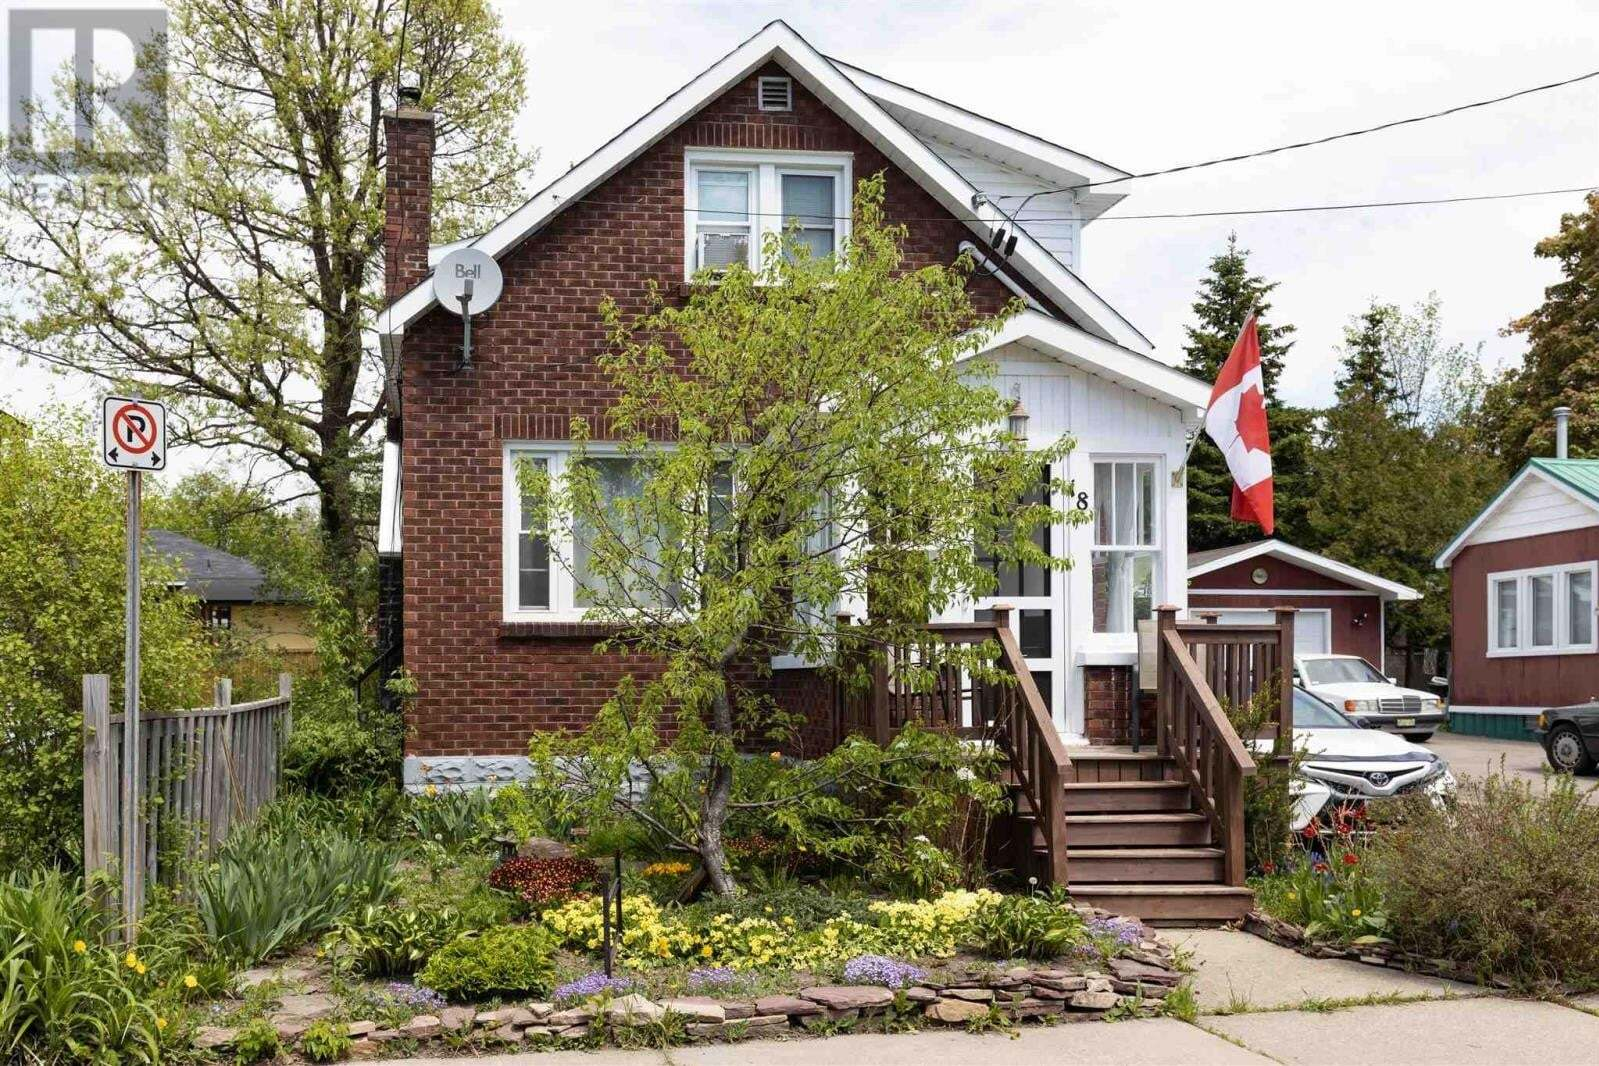 Townhouse for sale at 18 Hawthorne Ave Sault Ste. Marie Ontario - MLS: SM129363